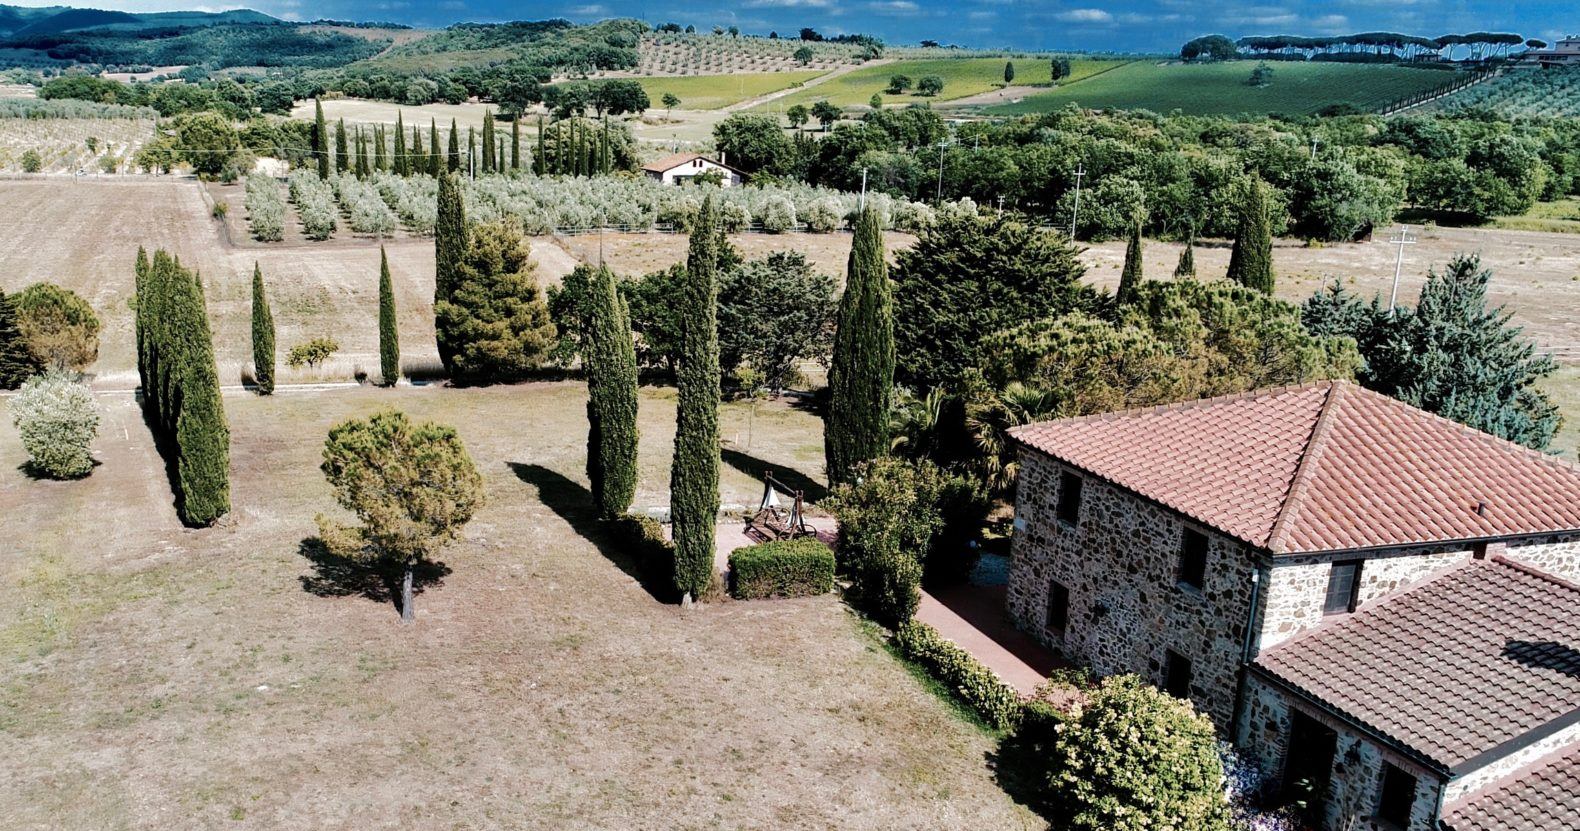 landscape-view-tuscany-fields-trees-historic-building-dojo-bianco-italy